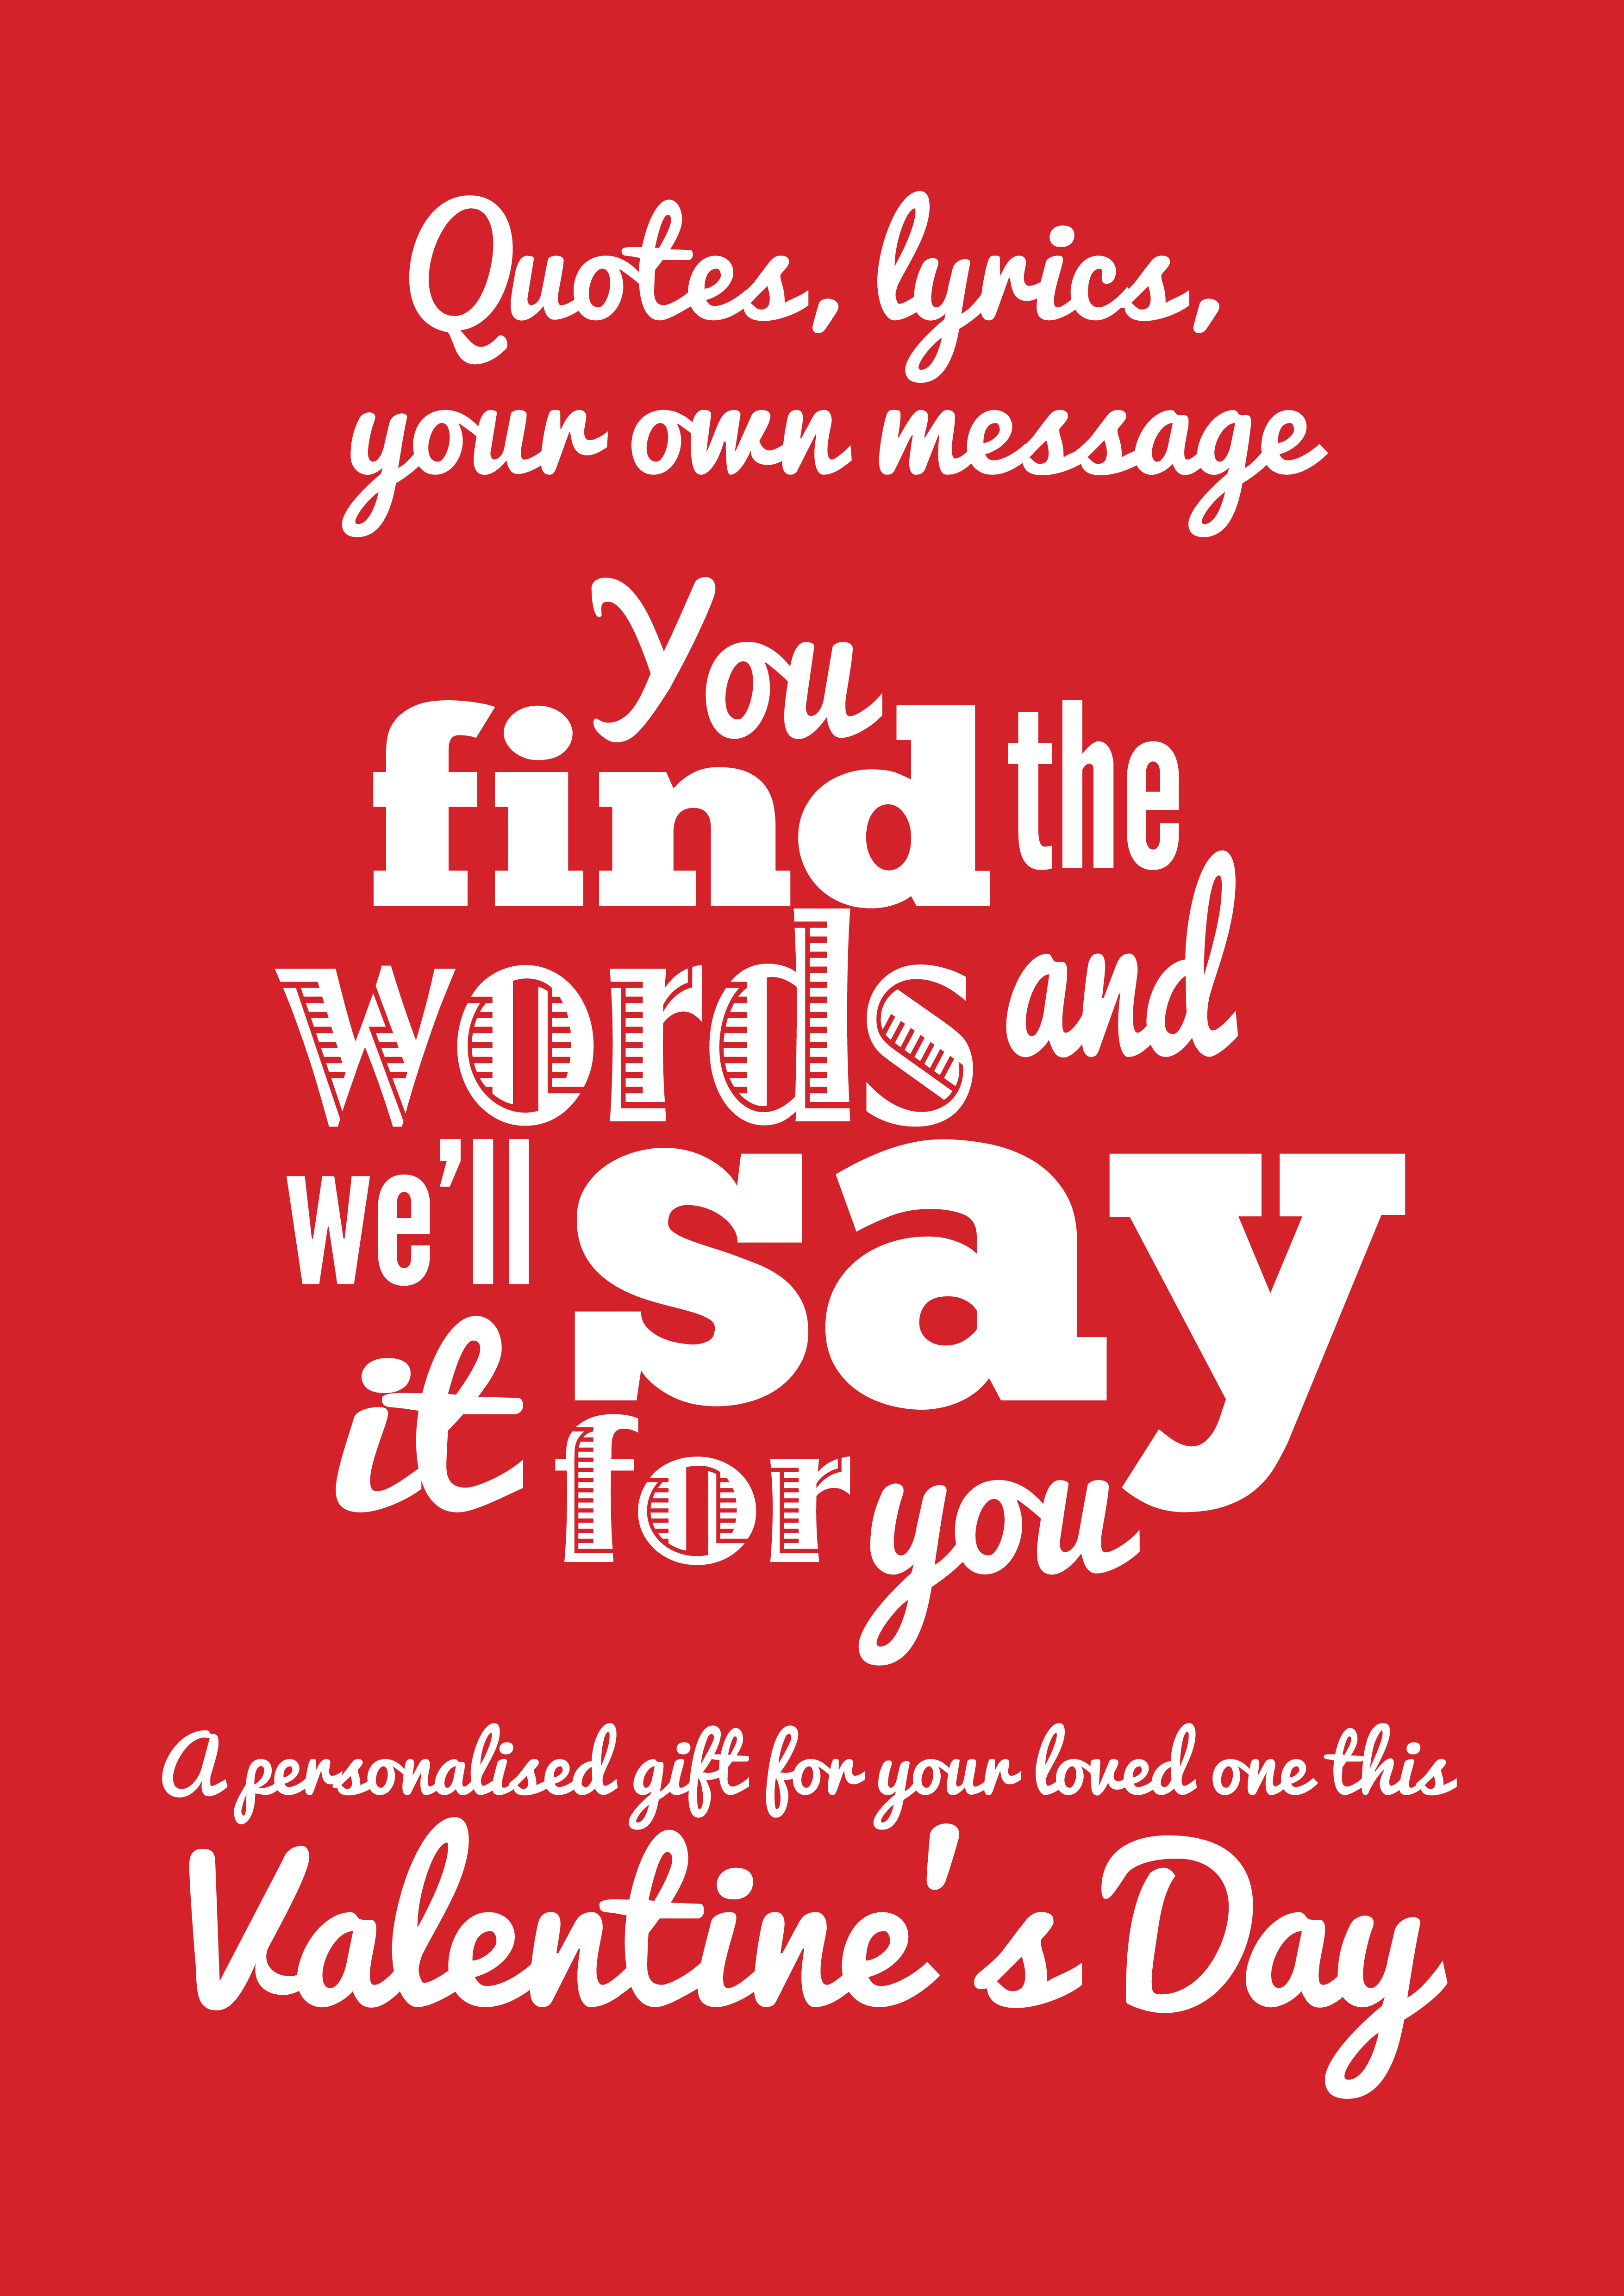 valentine quote 1 - Valentine Sayings For Husband